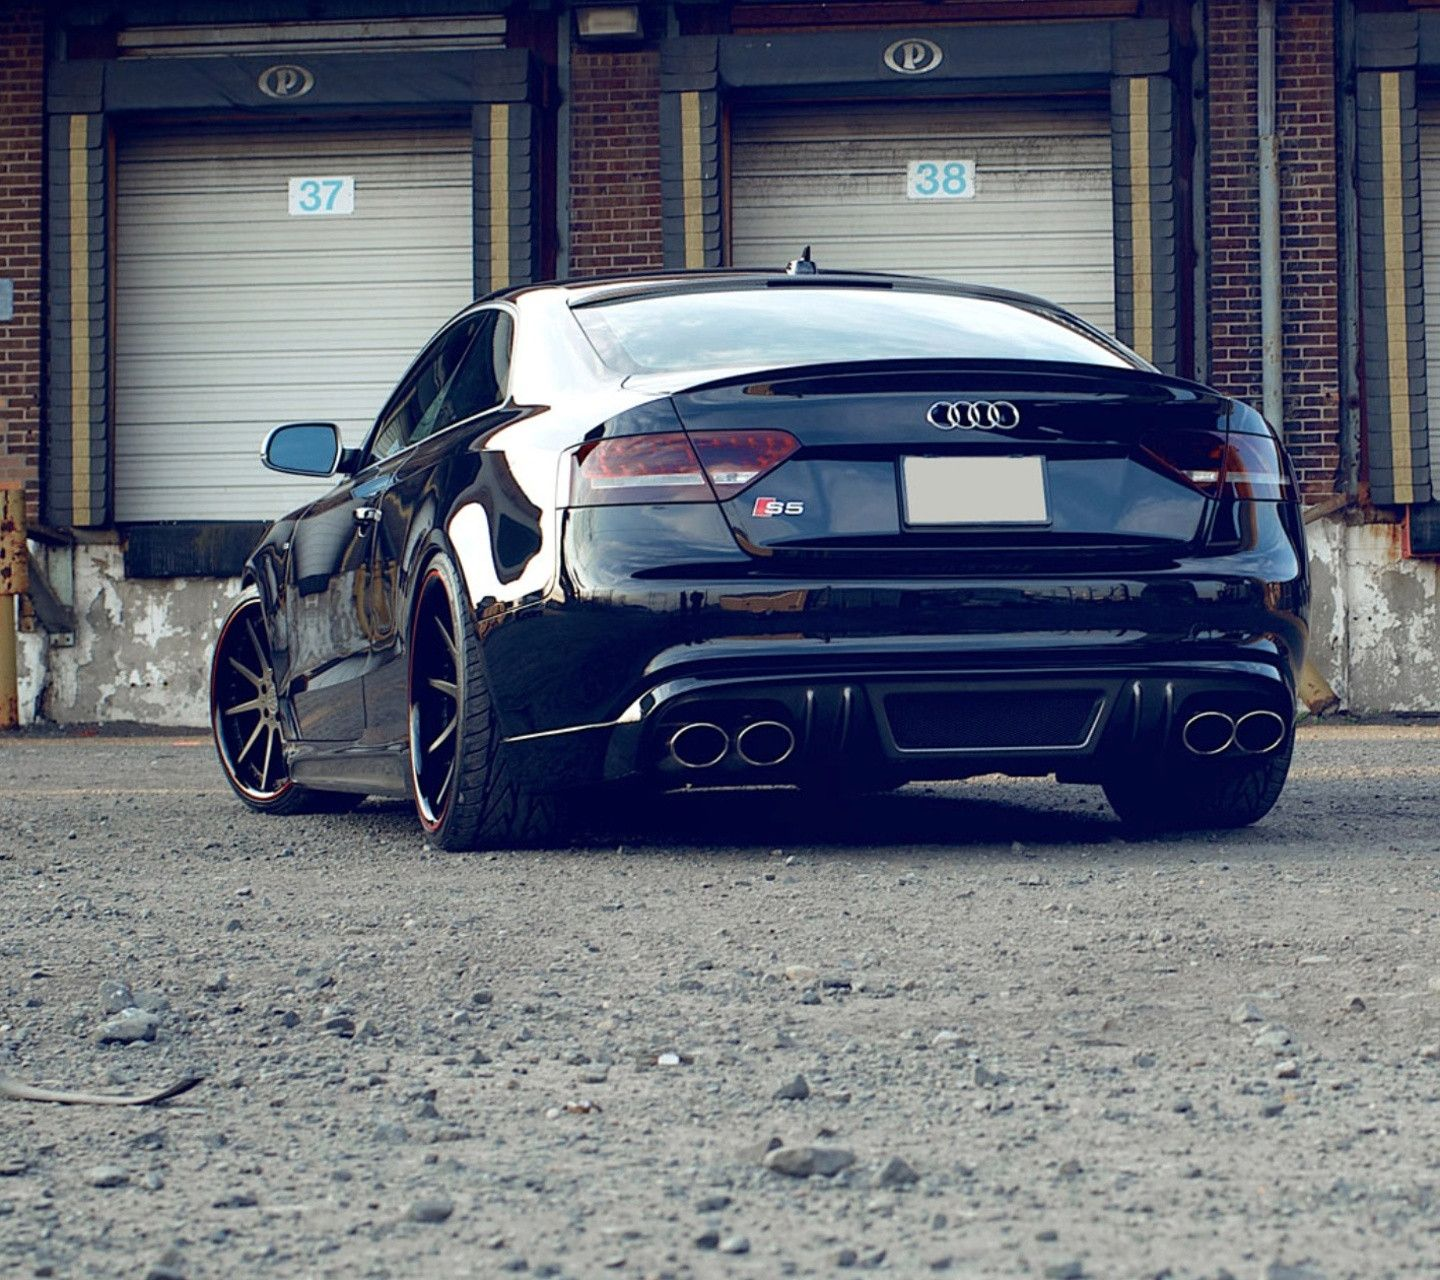 Incroyable Audi German Cars Are Beautiful.